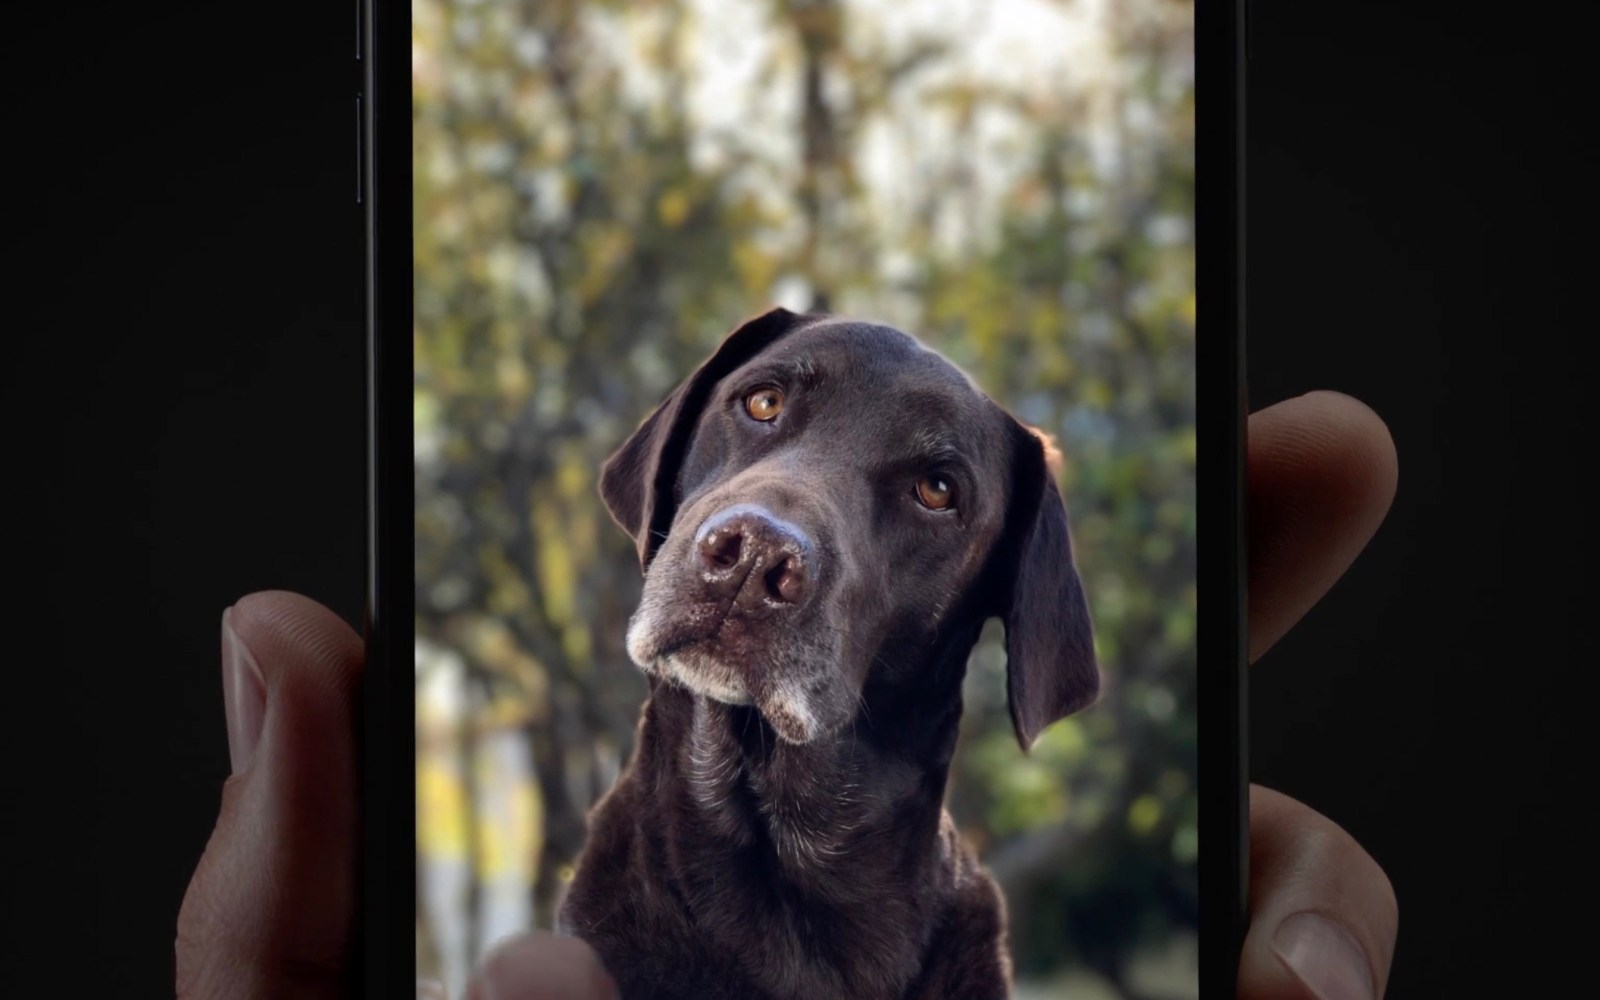 Apple promoting Portrait Mode Depth Effect in latest iPhone 7 Plus video ads [Update]